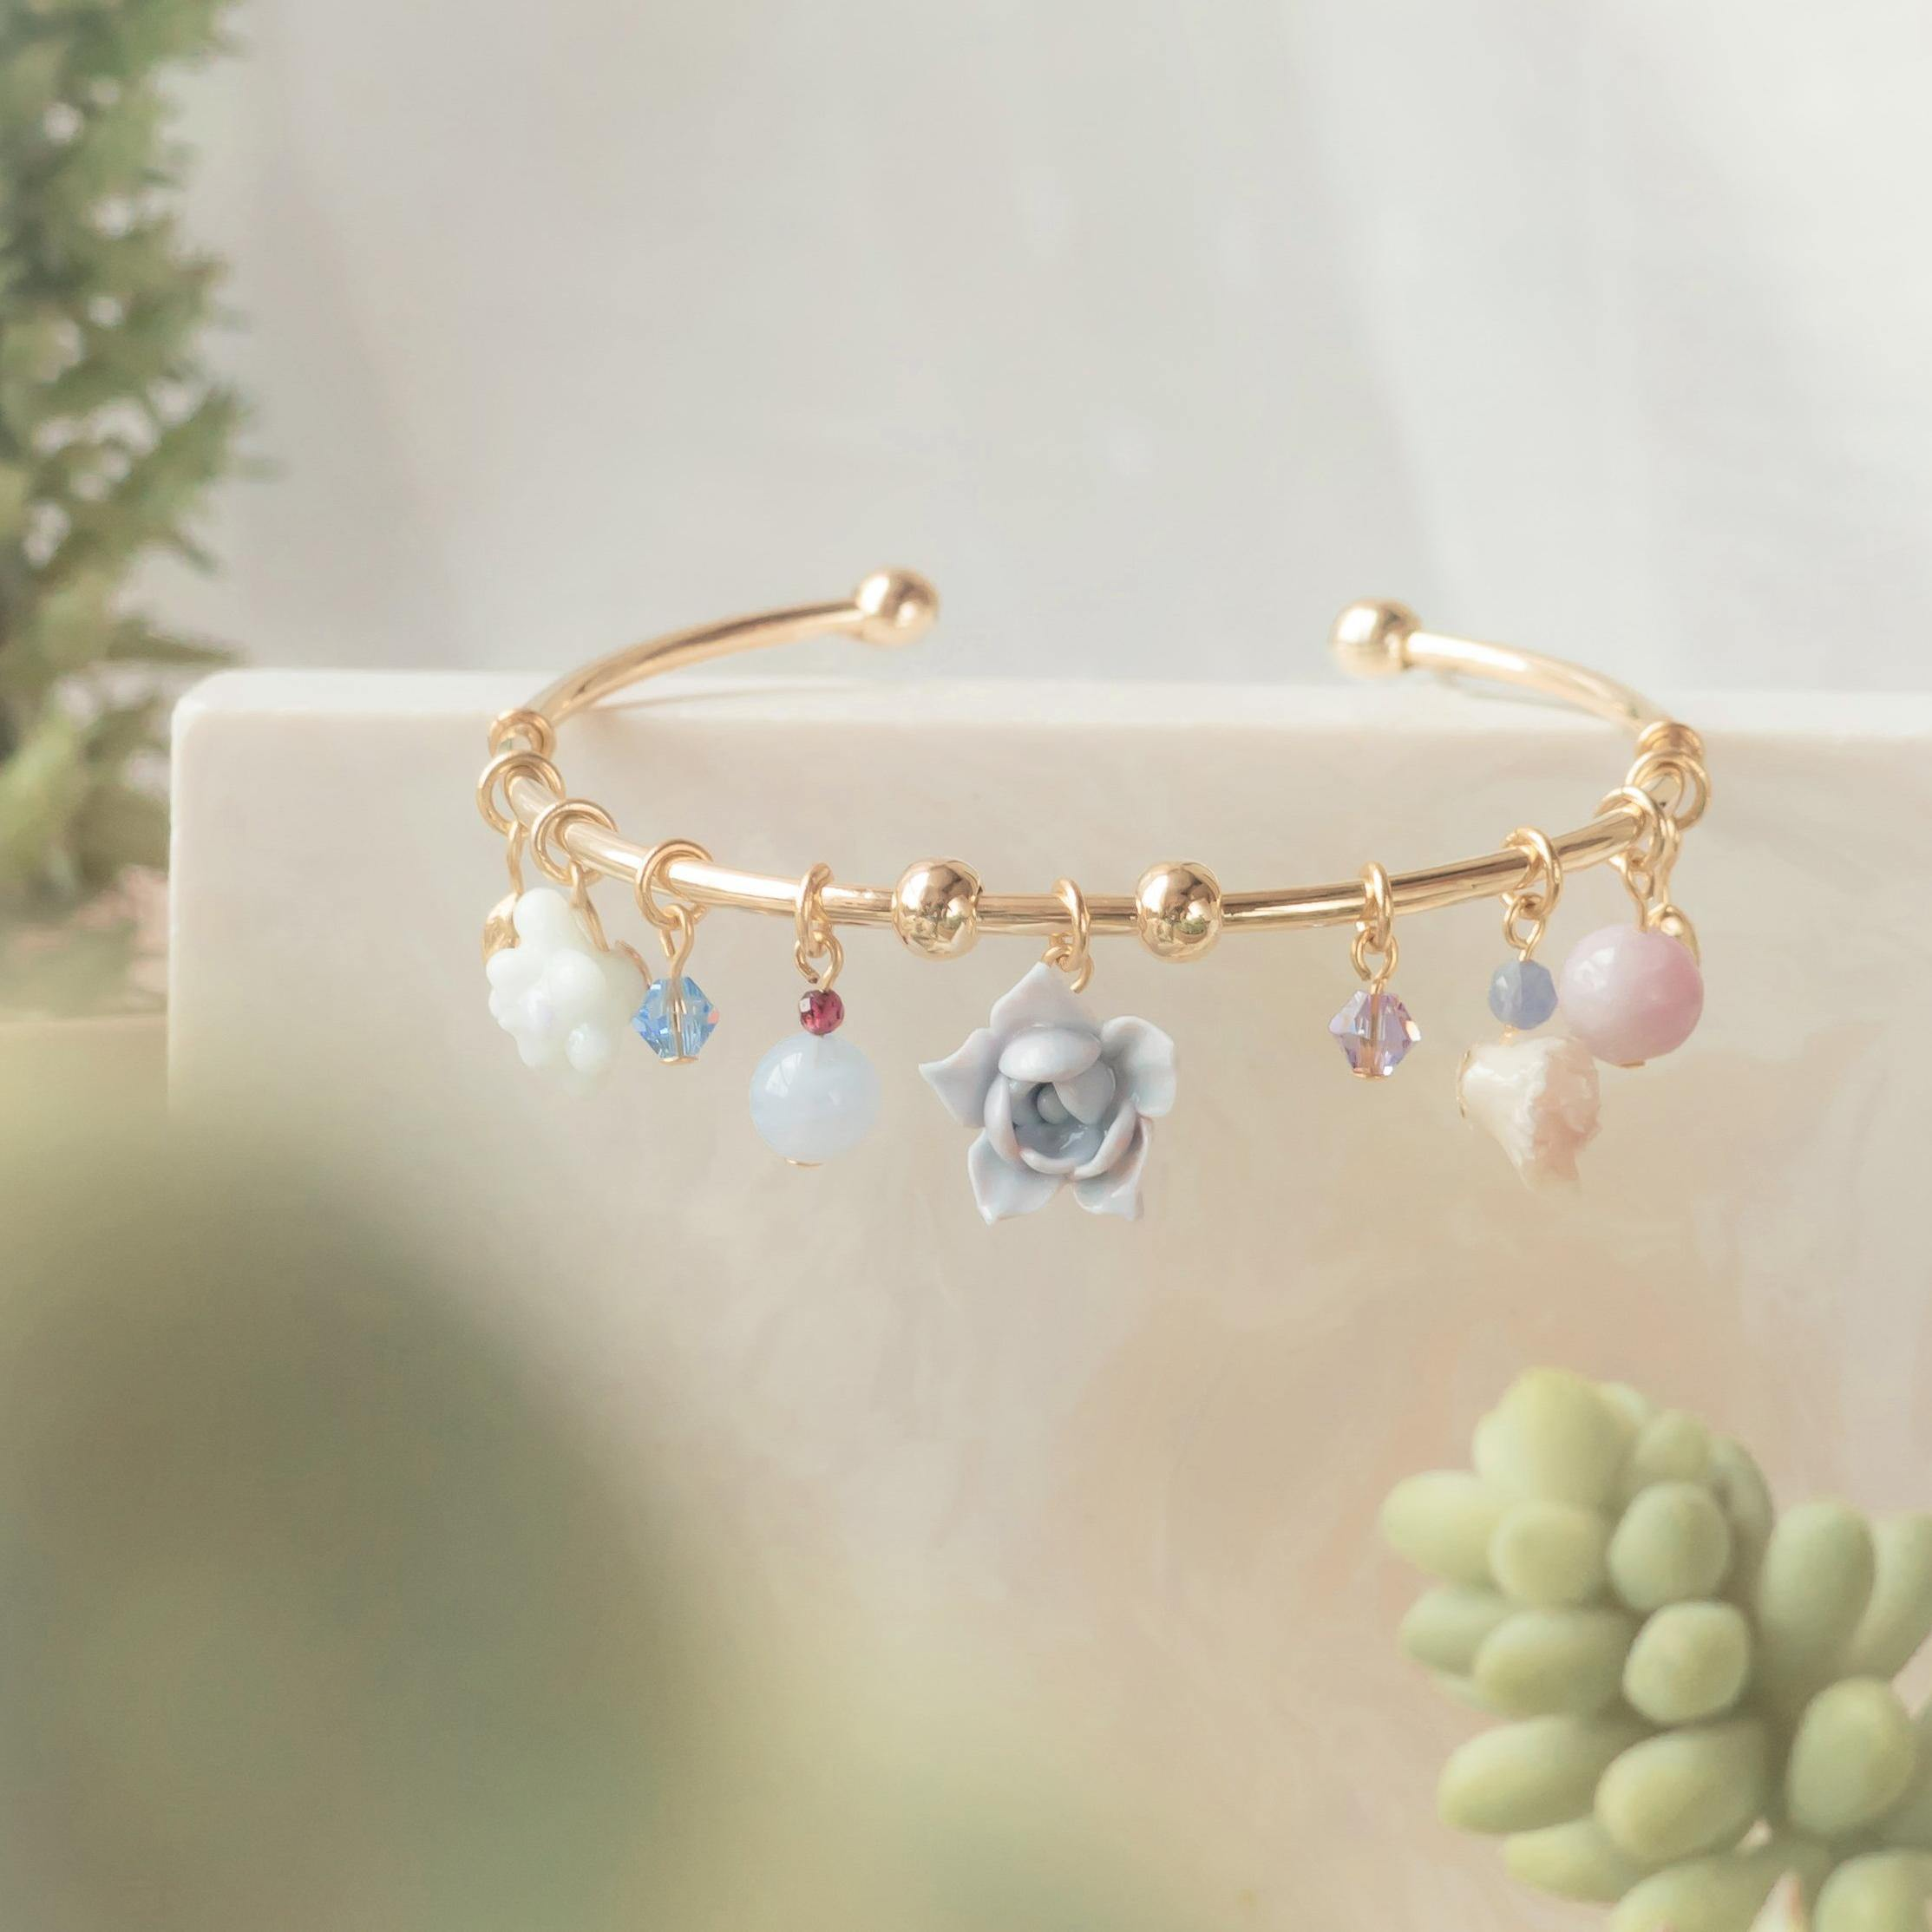 #5 ZODIAC Gemini Succulent Gold-plated Charm Bangle